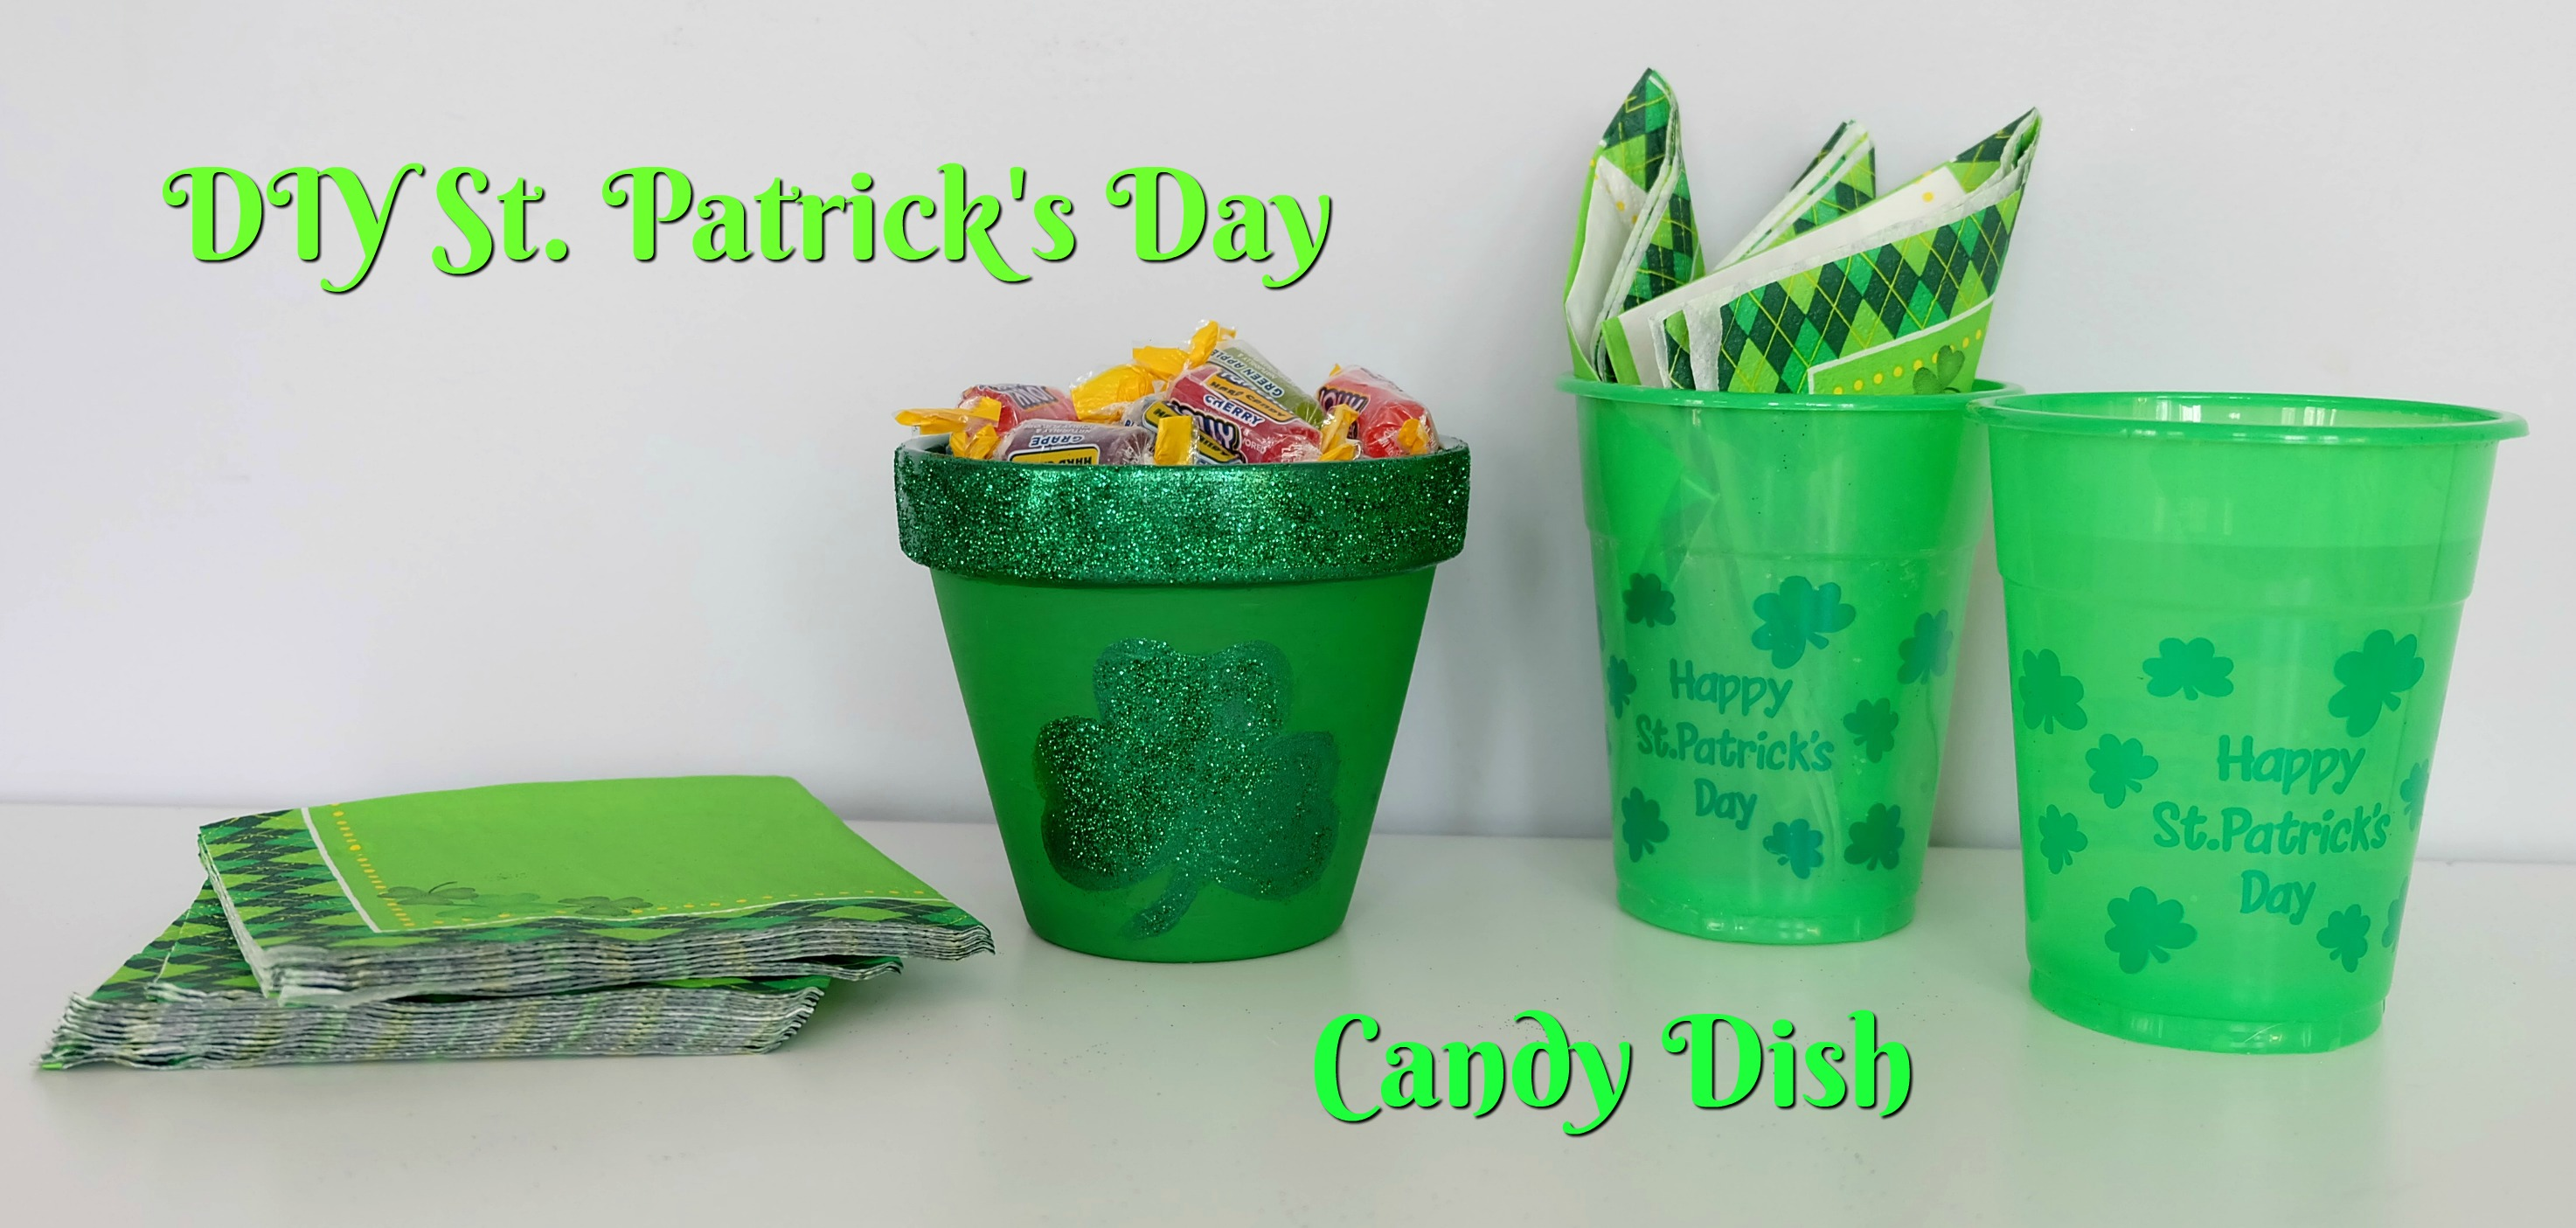 st-patricks-day-candy-dish-title